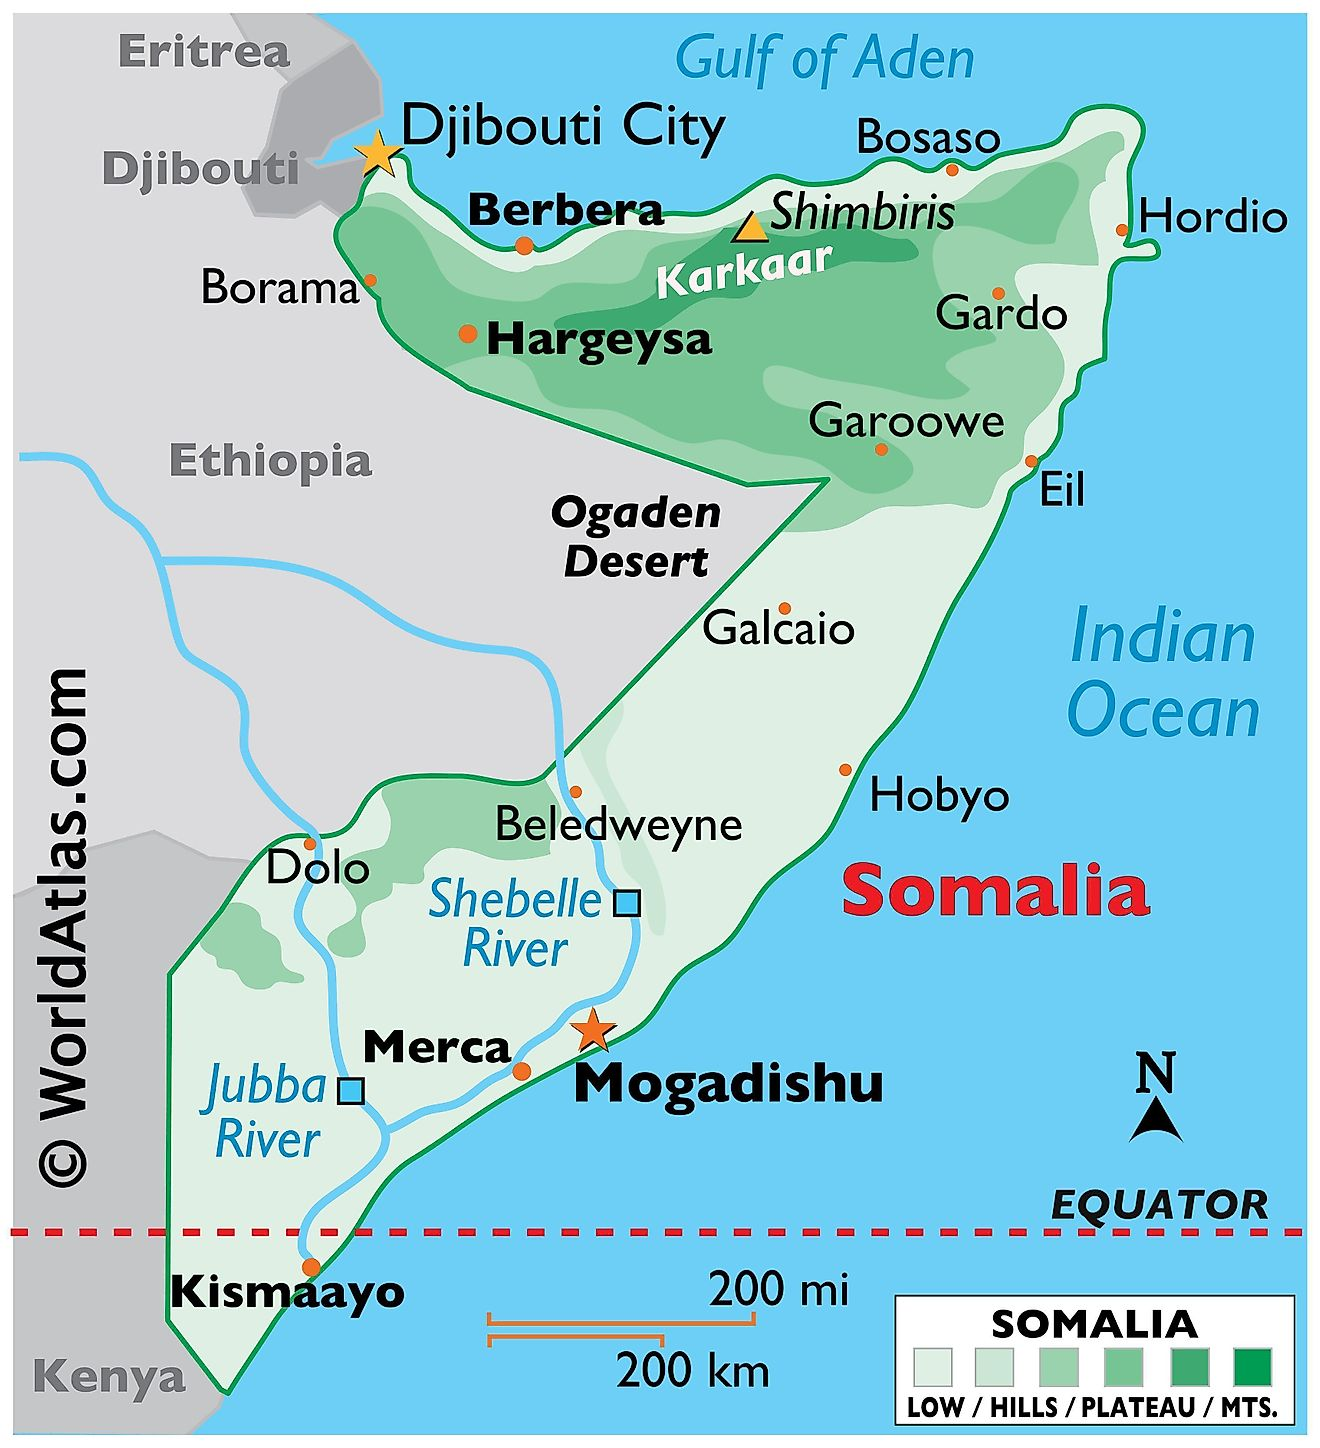 Phyiscal Map of Somalia with state boundaries. It shows the physical features of Somalia including terrain, mountain ranges, rivers, and major cities.